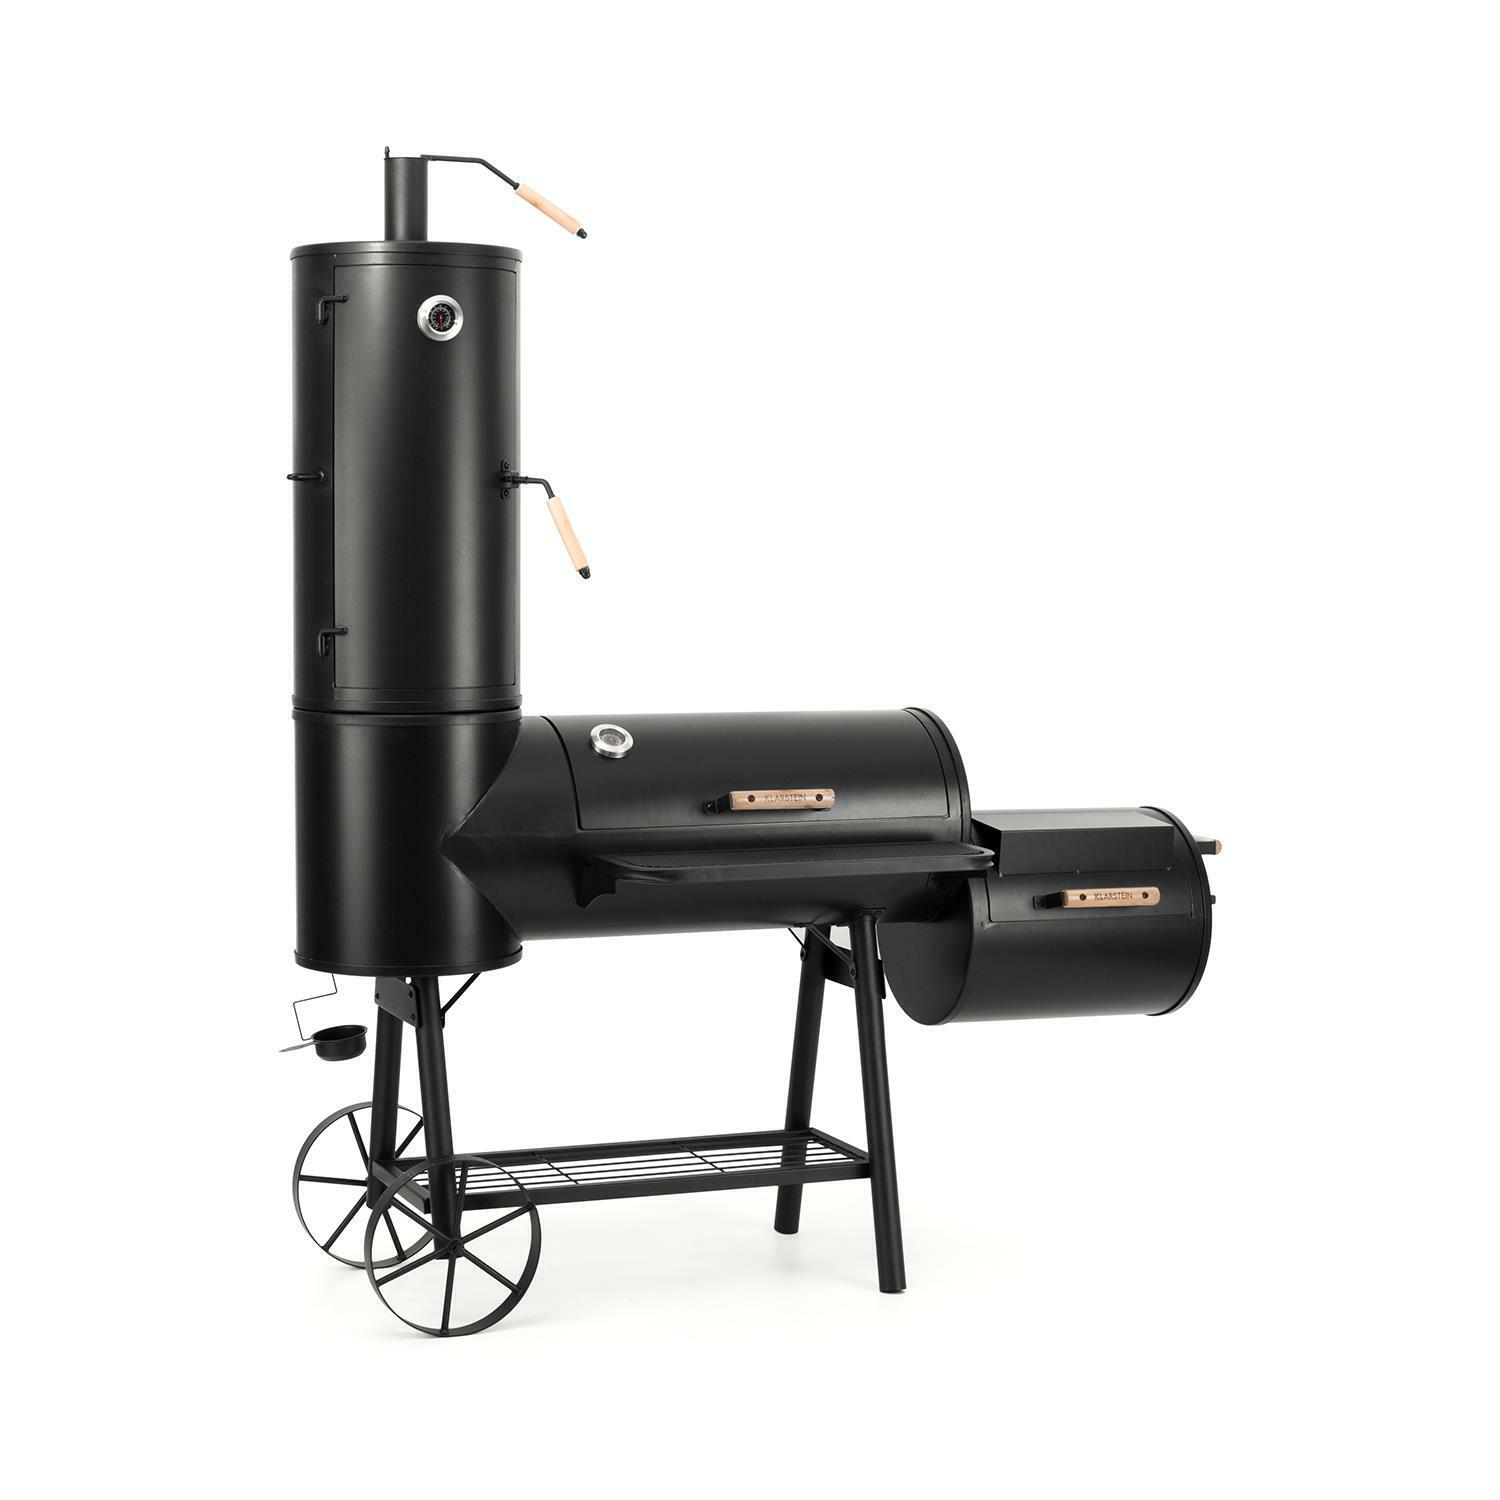 smoker grill grillwagen gartengrill 3 grilleinheiten thermometer stahlblech eur 599 99. Black Bedroom Furniture Sets. Home Design Ideas